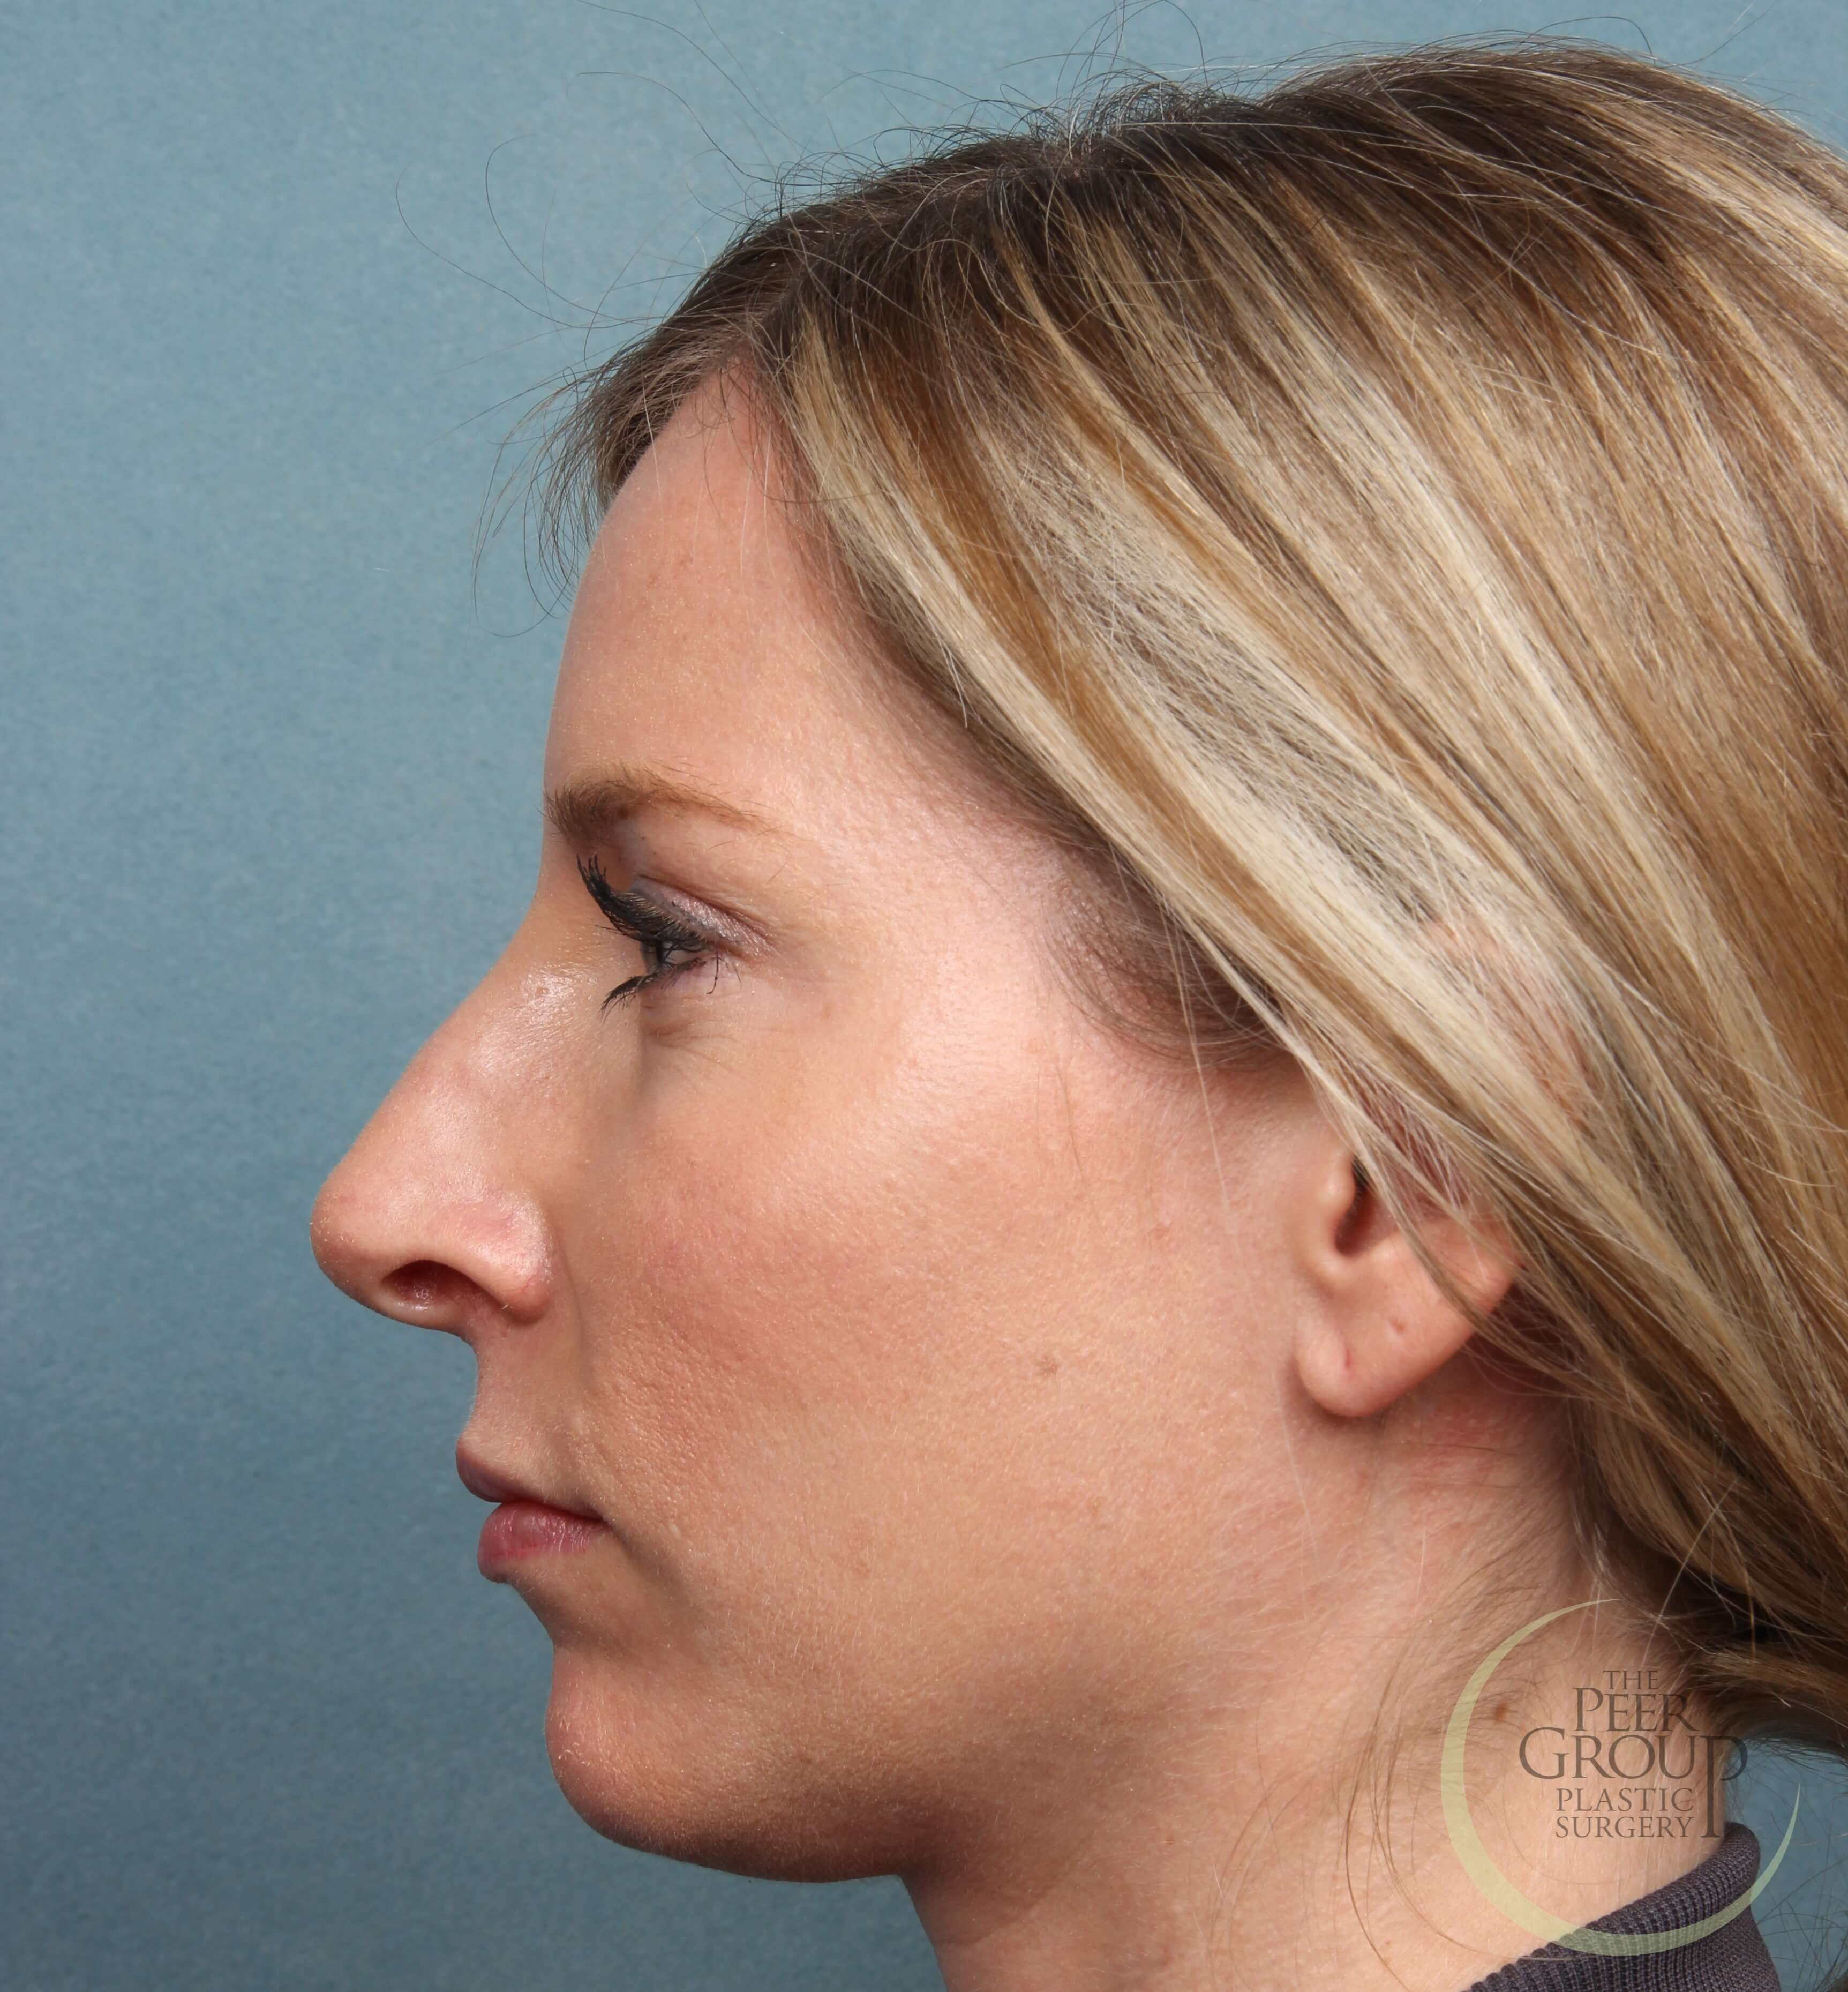 NJ Botox and Juvederm After Juvederm and Botox